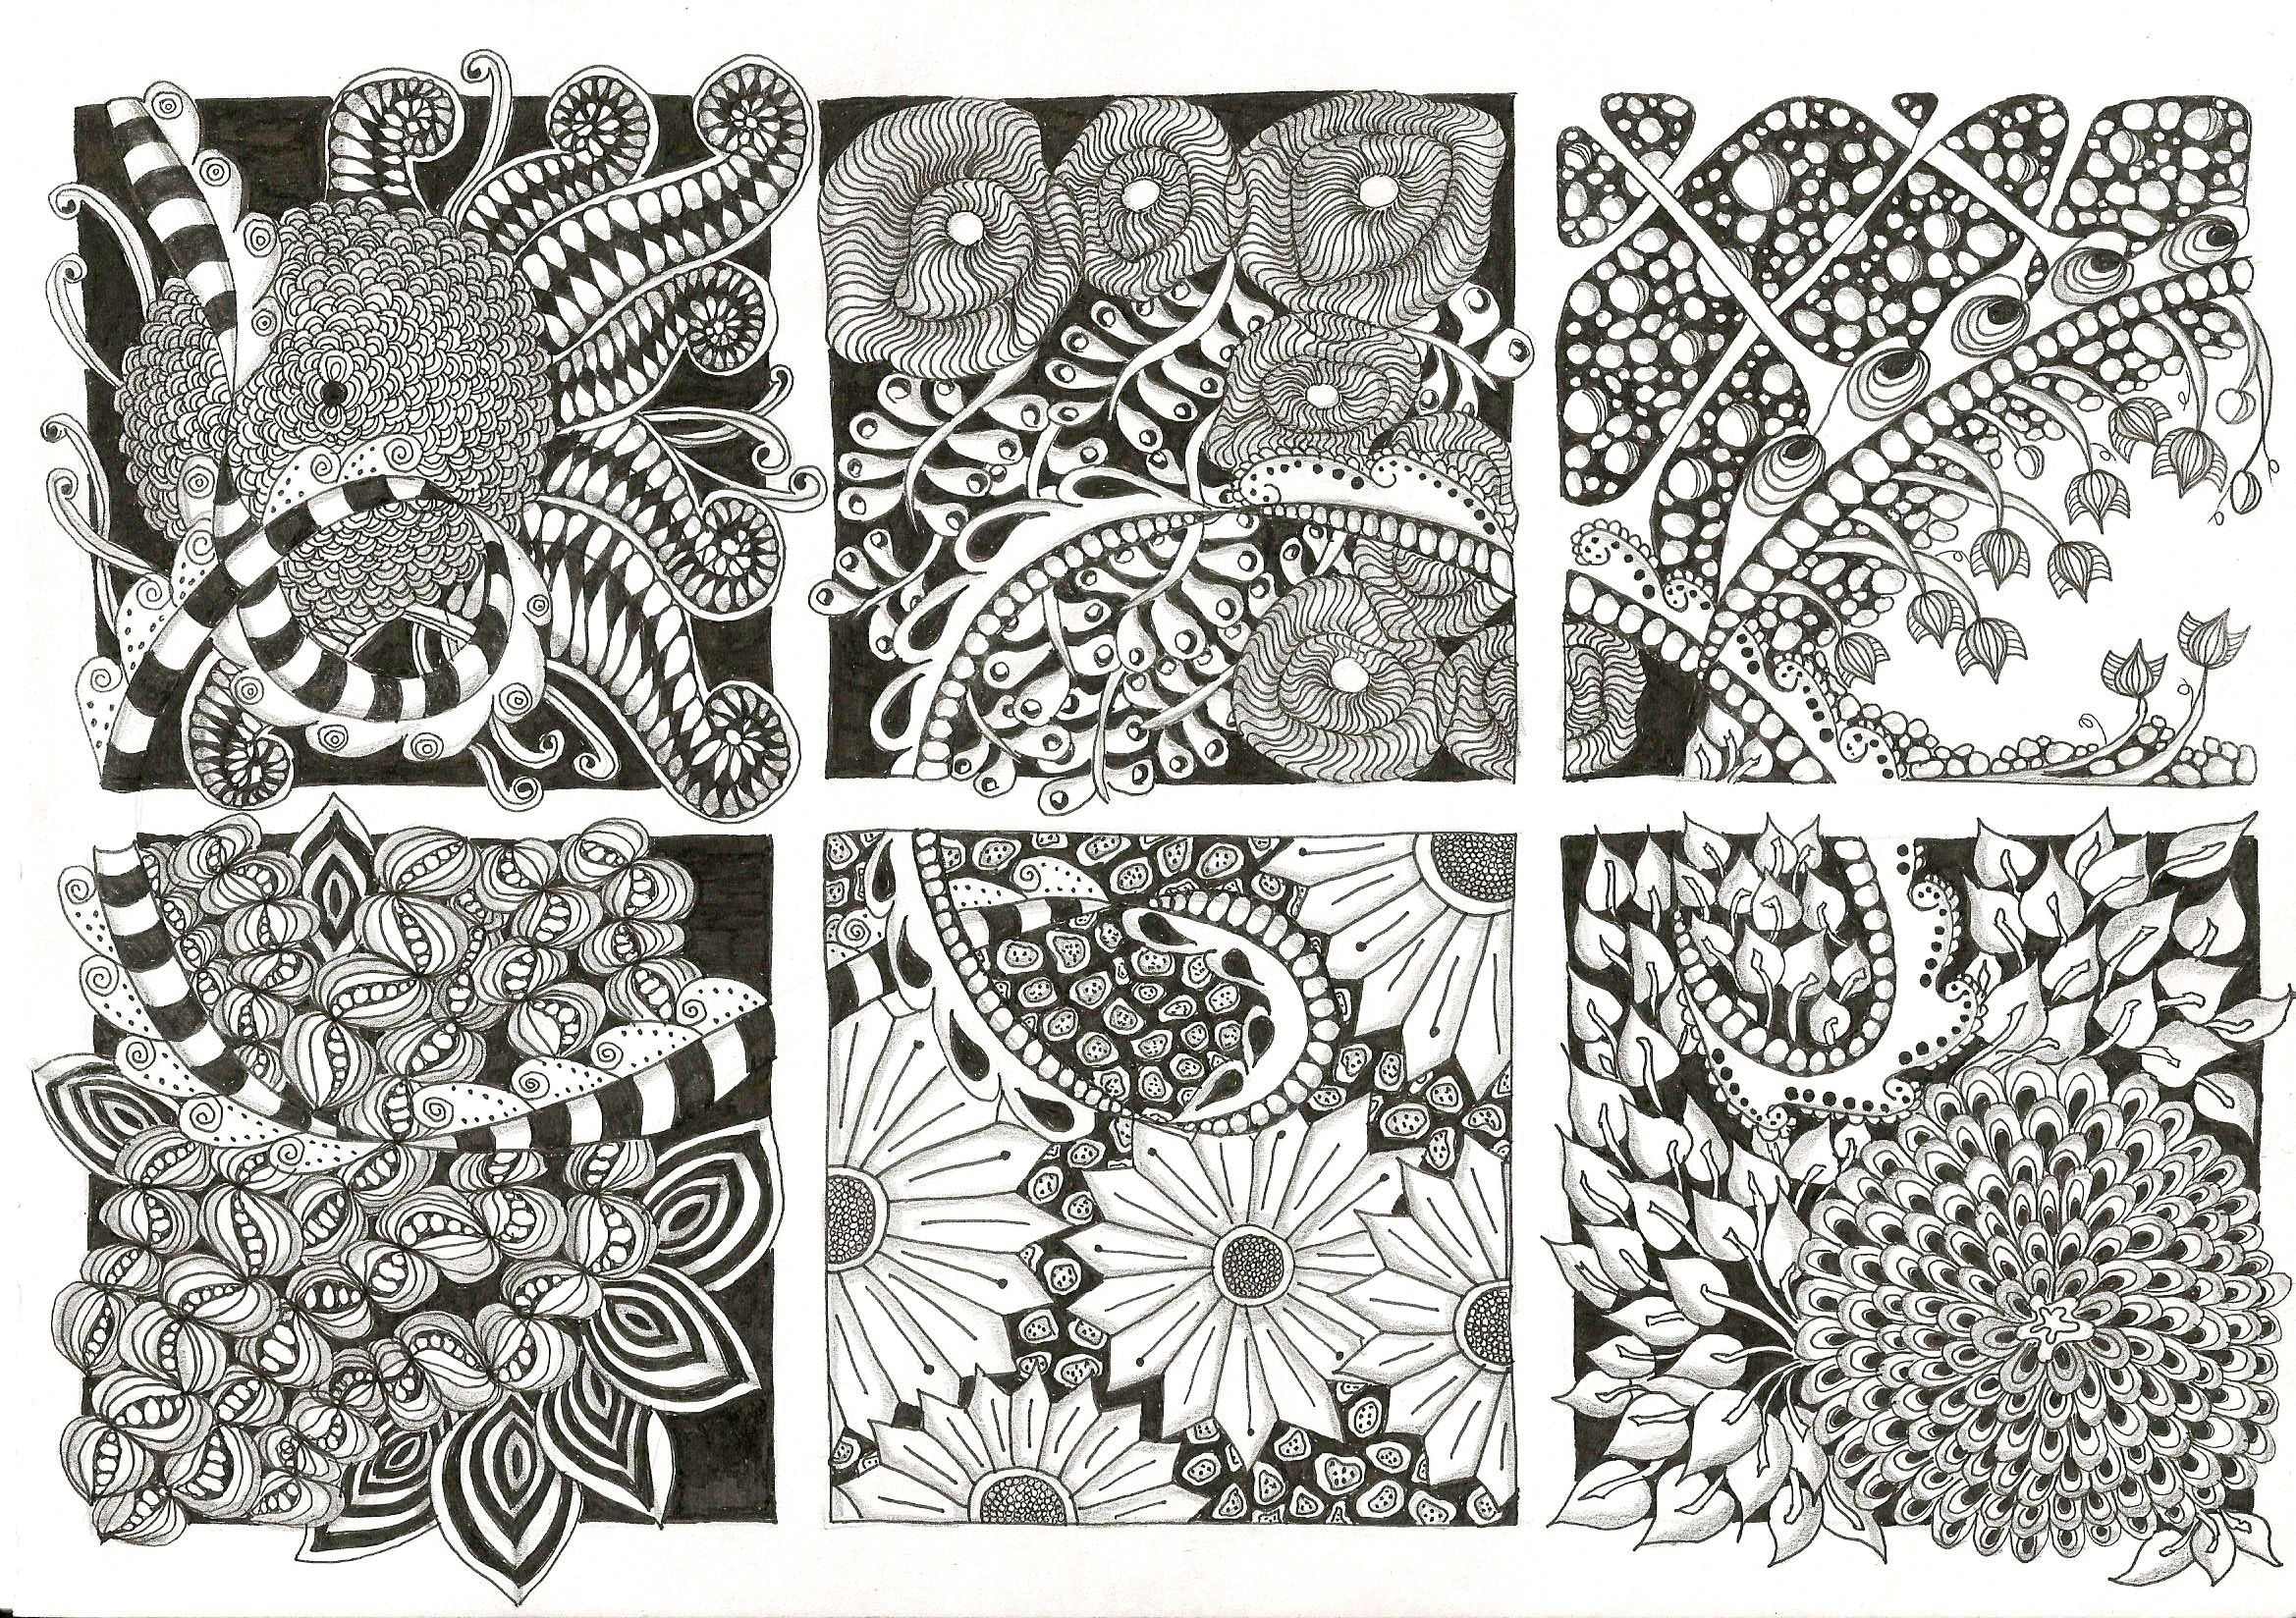 Zentangle flowers my zentangle inspired art and other drawings